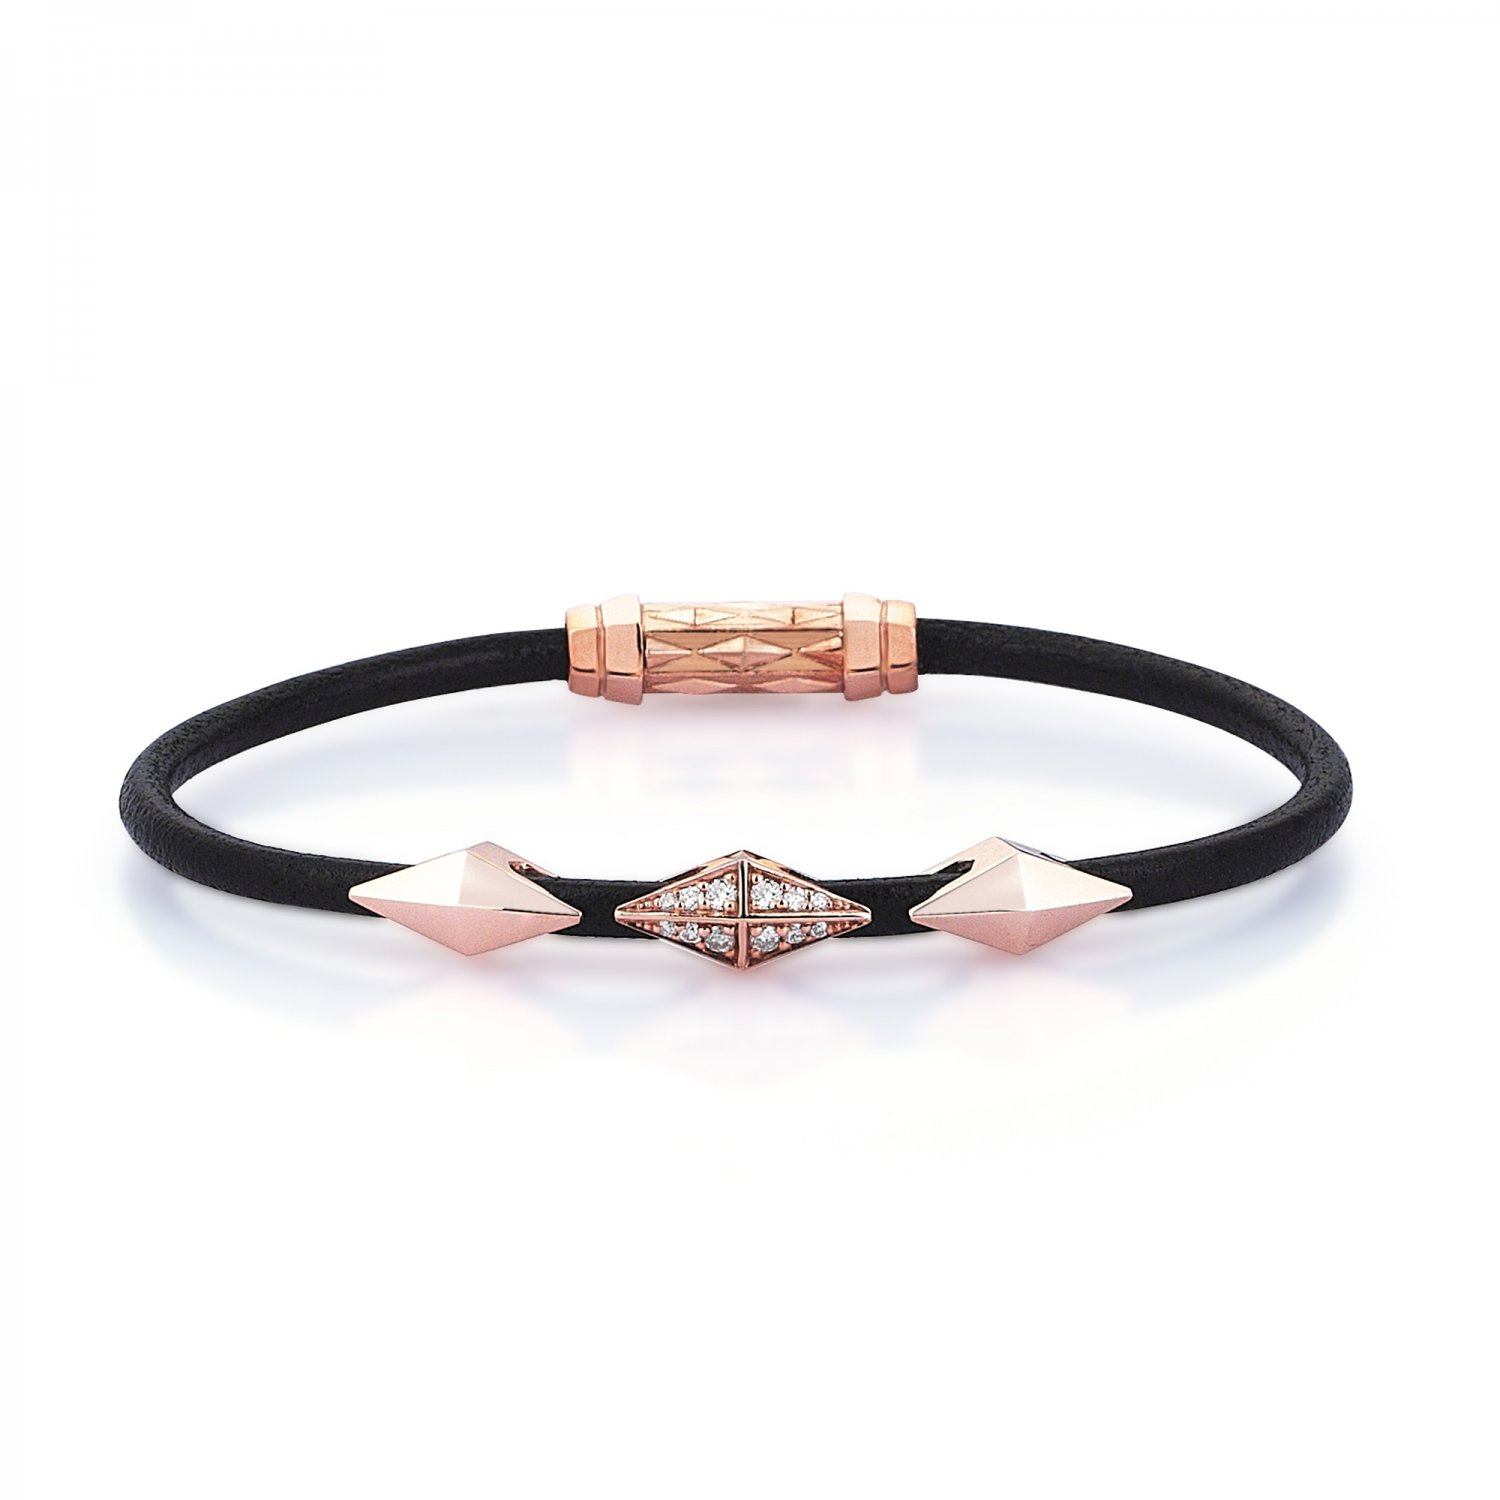 Single Lap Natural Black Leather Iconic Diamondback Silver Bracelet in Rose with Diamonds